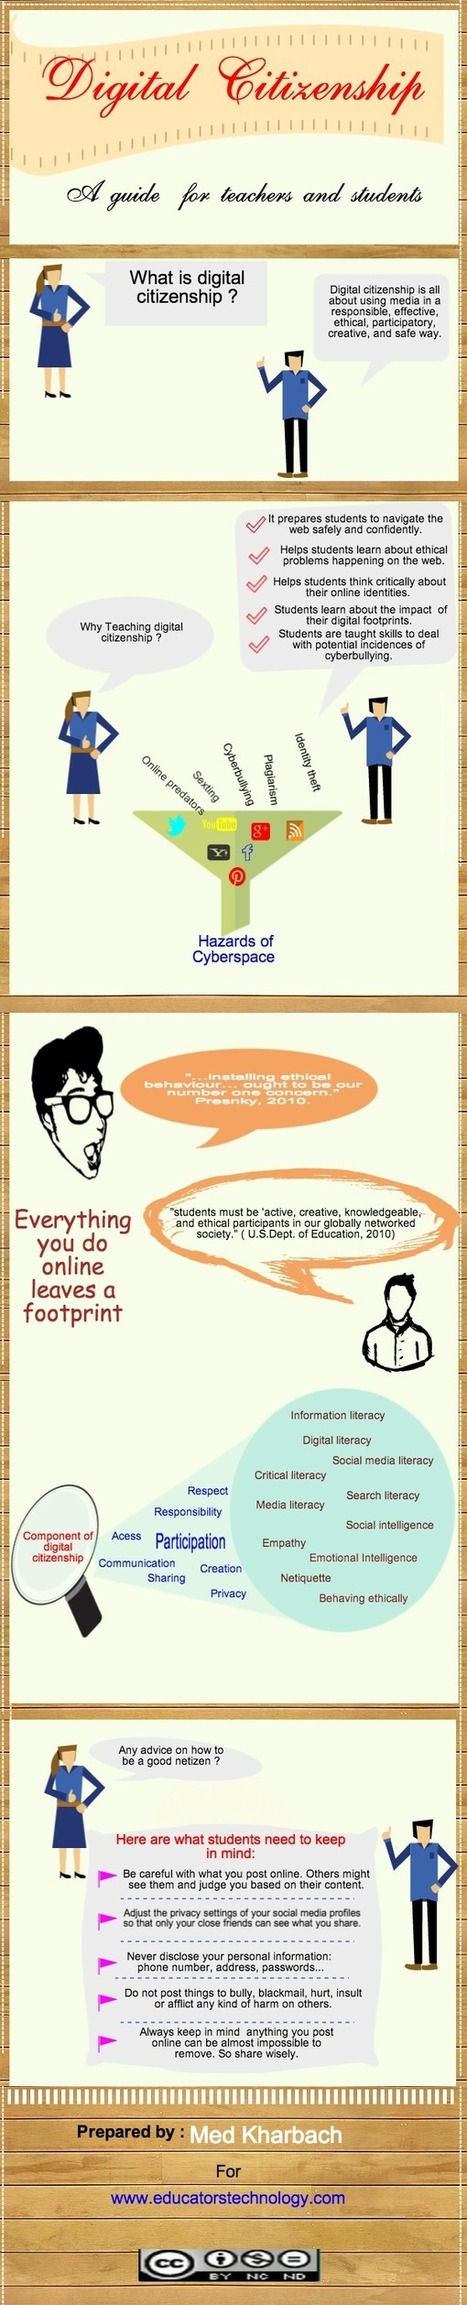 Digital Citizenship Explained for Teachers via @medkh9 | PLN.gr | Scoop.it